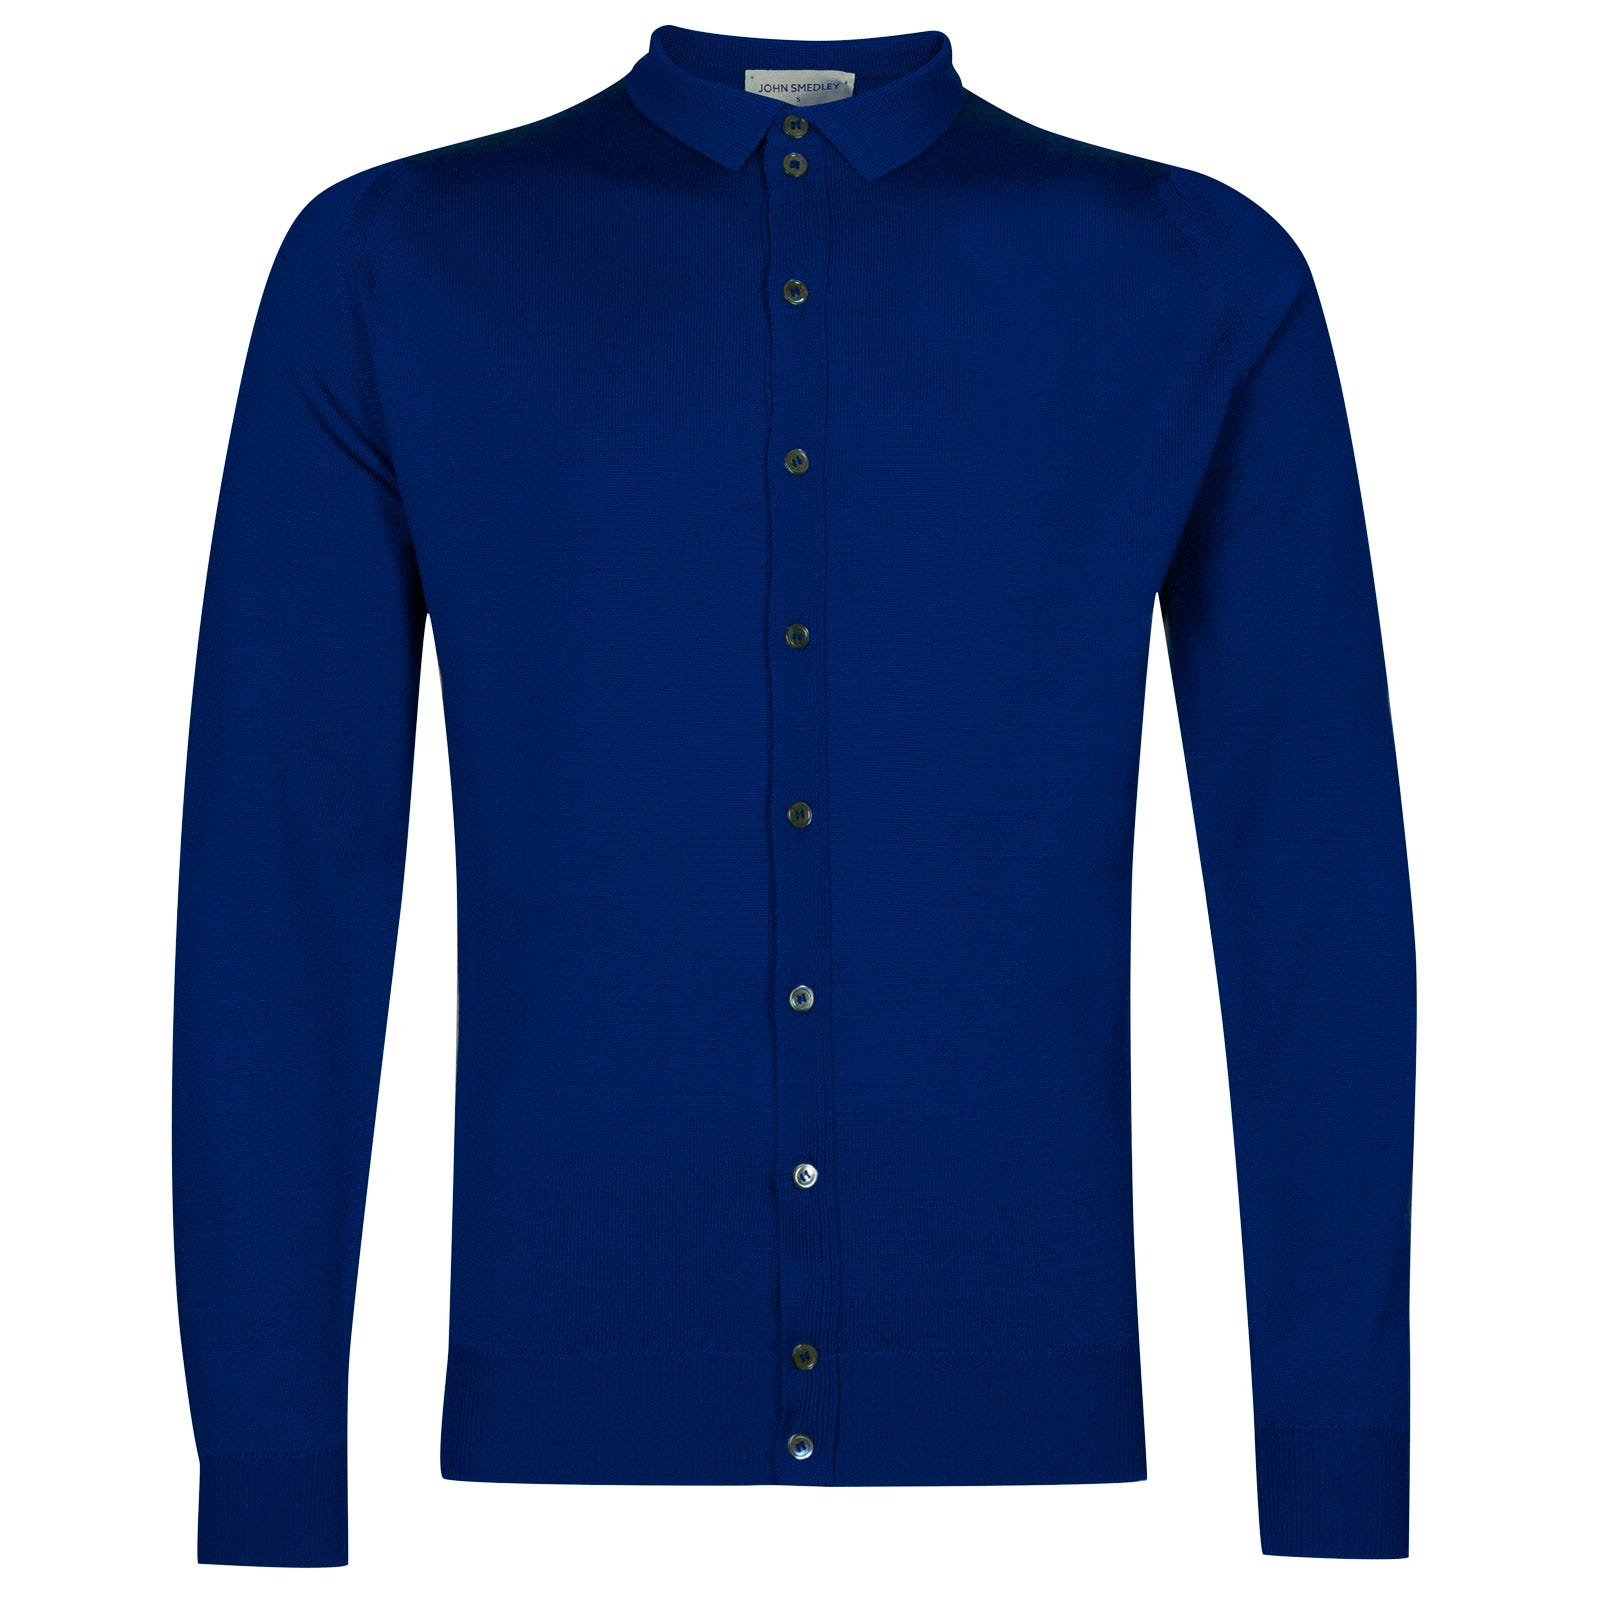 John Smedley parwish Merino Wool Shirt in Coniston Blue-M